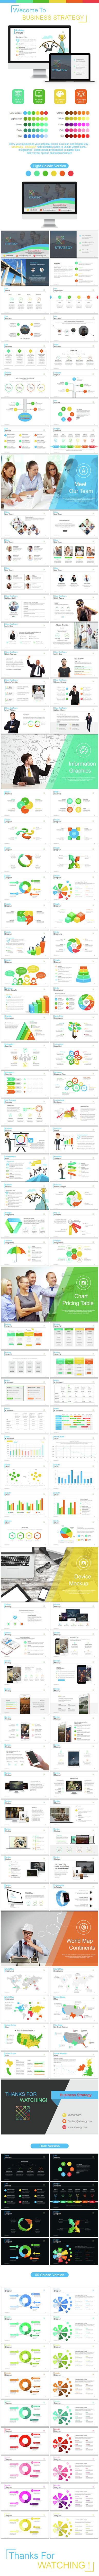 Business Strategy Powerpoint Template - PowerPoint Templates Presentation Templates